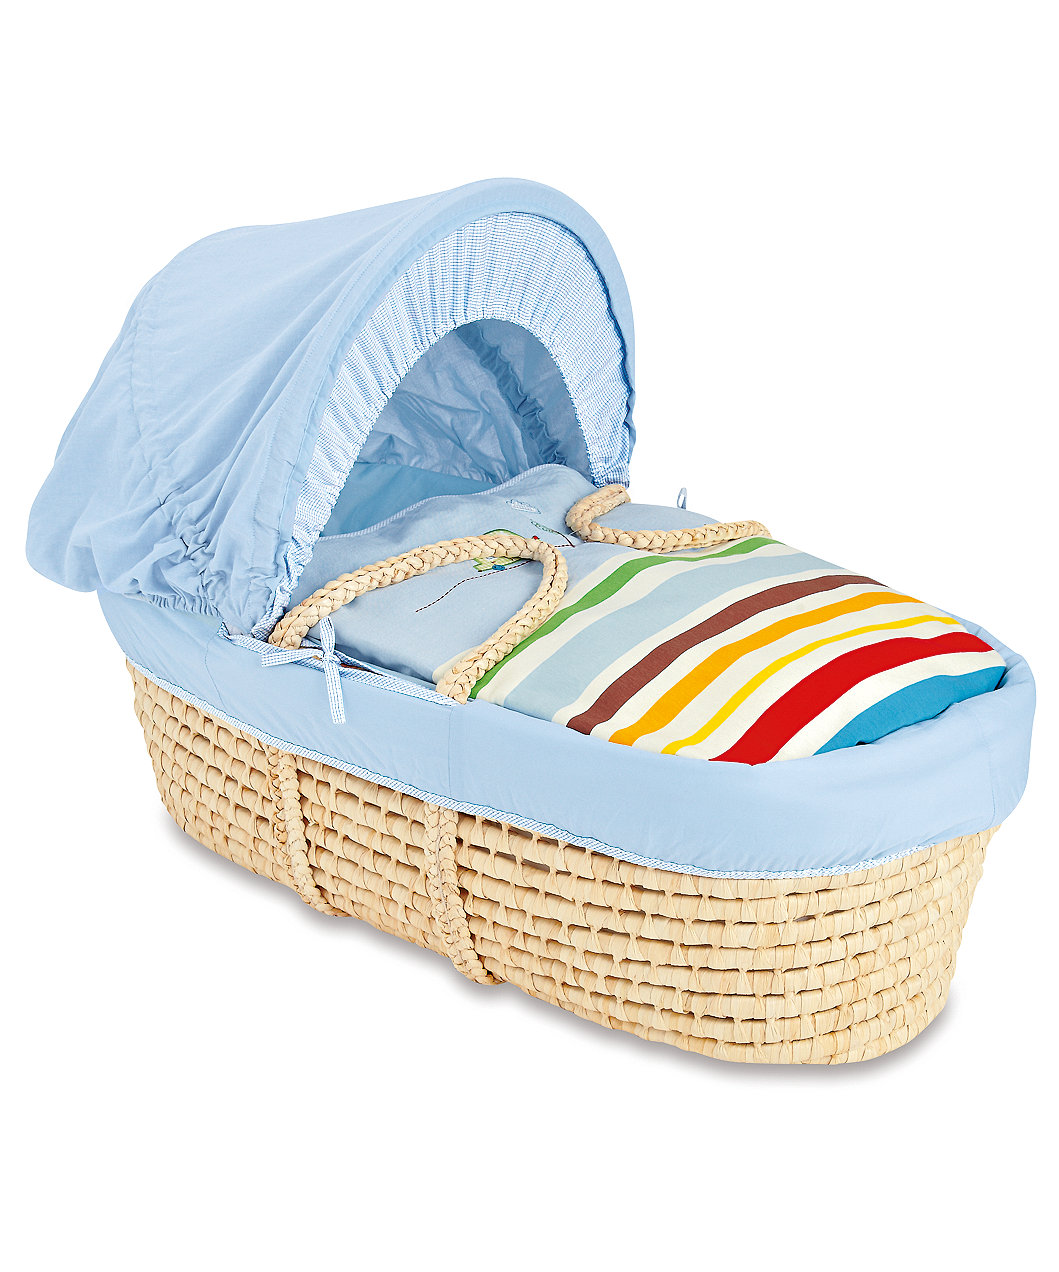 Bassinets & Cradles Clevafoam Moses Basket Mattress A Complete Range Of Specifications Baby